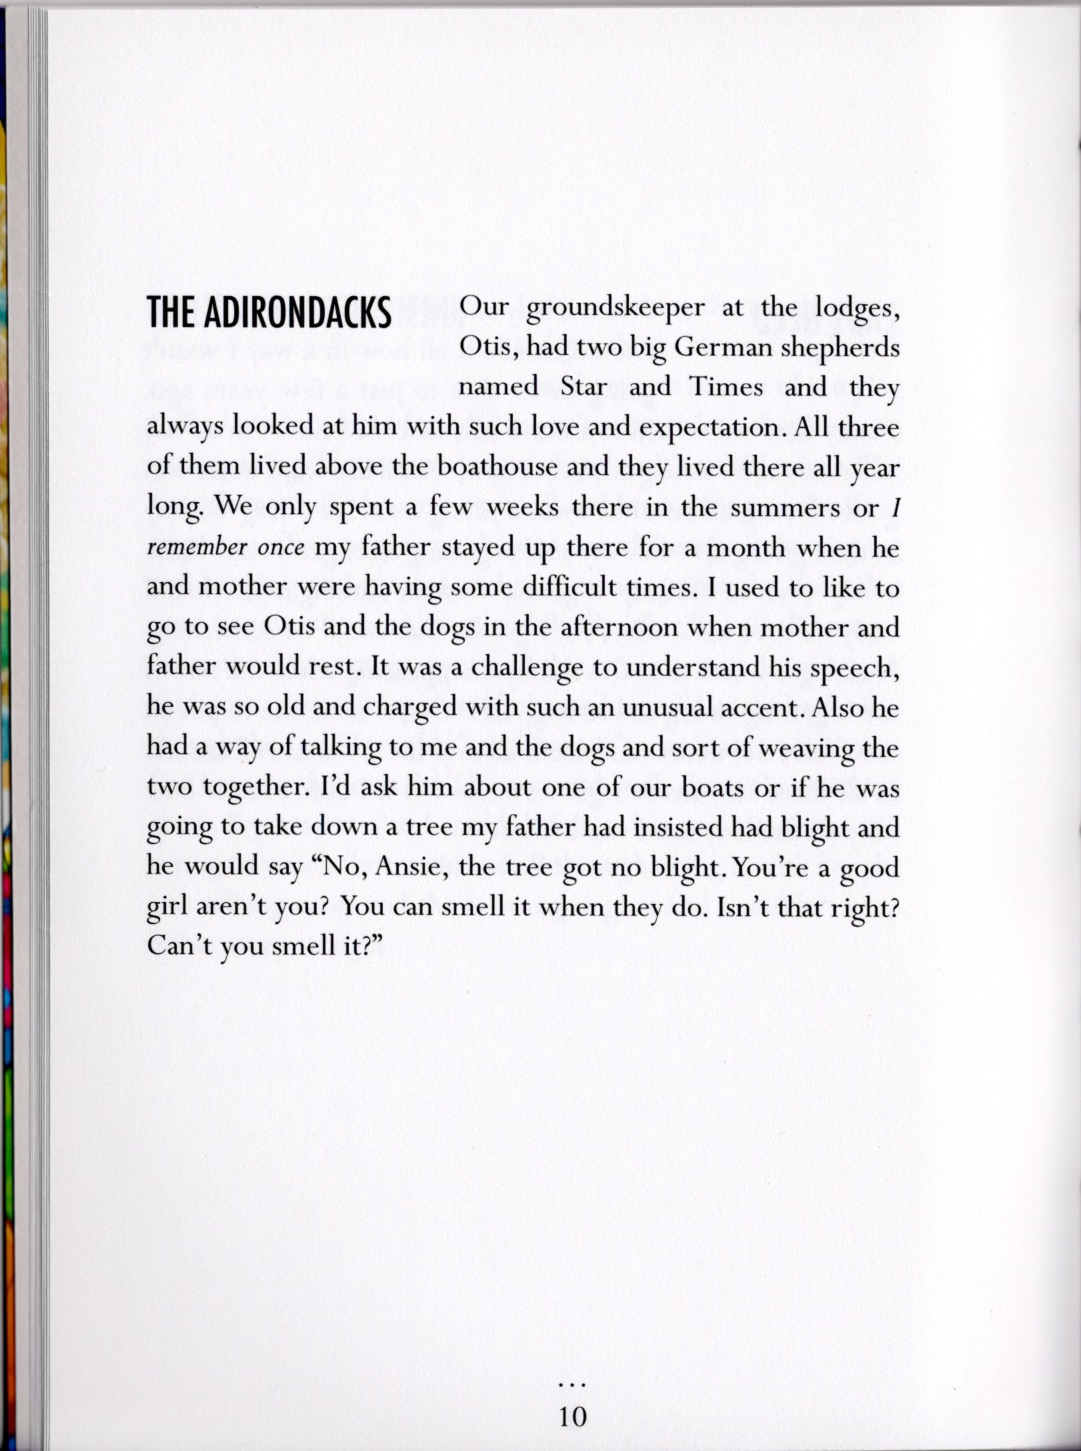 The Adirondacks from ALL THE PEOPLE by Stephanie Barber